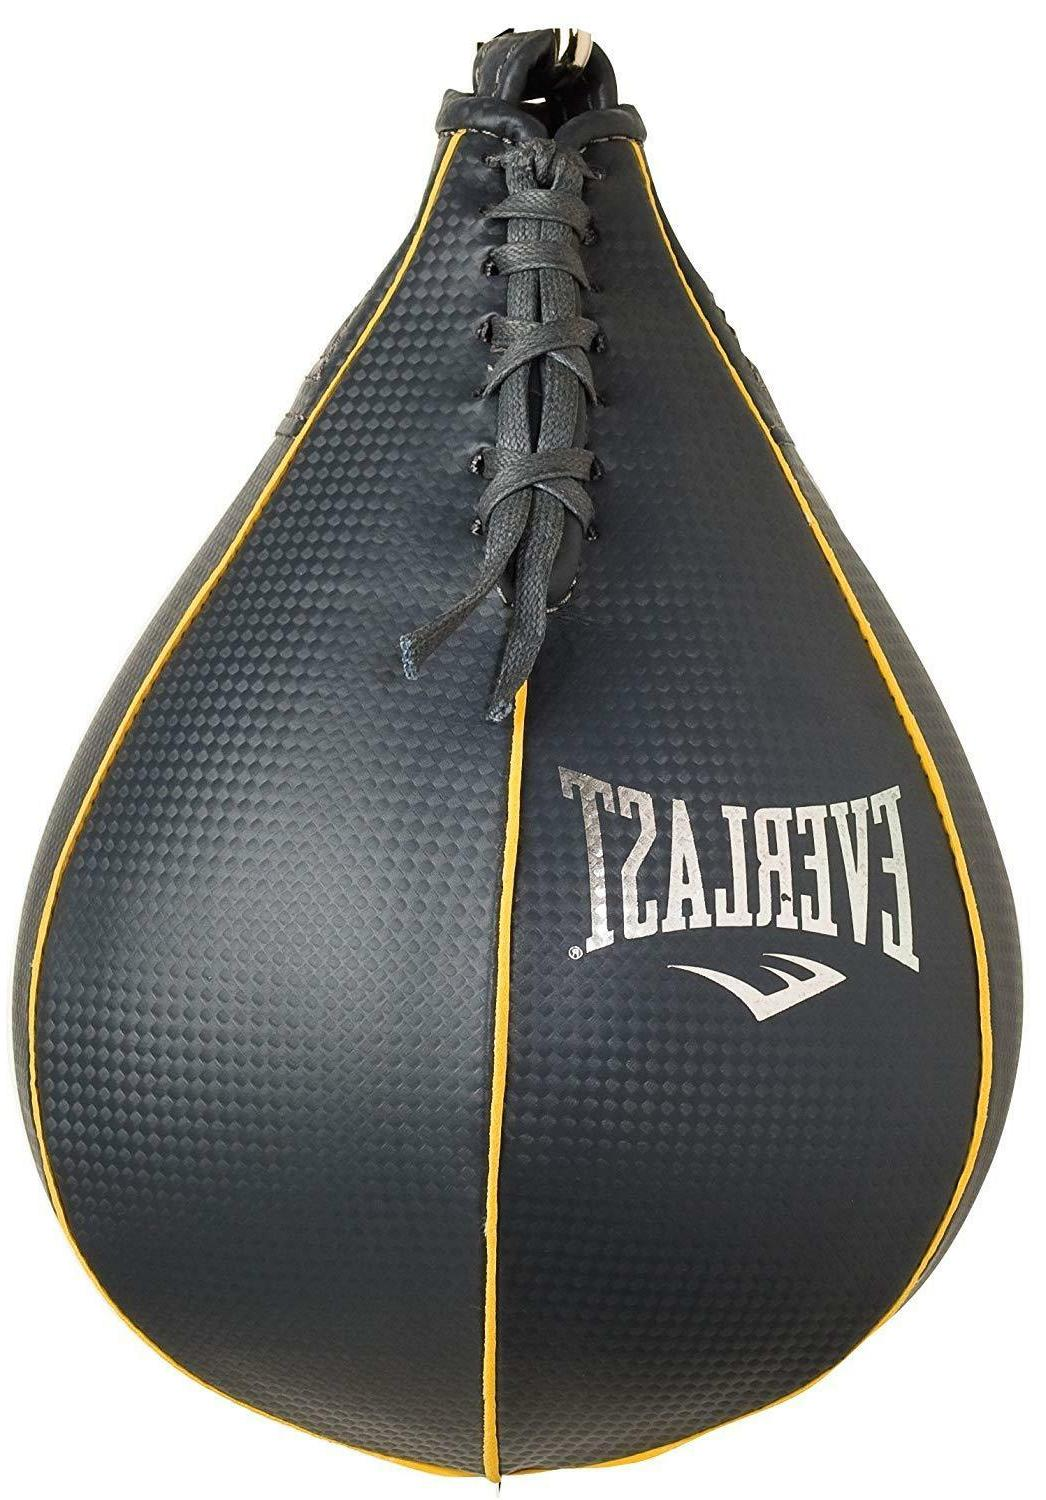 NEW Everlast Heavy + with Stand Gloves Wraps